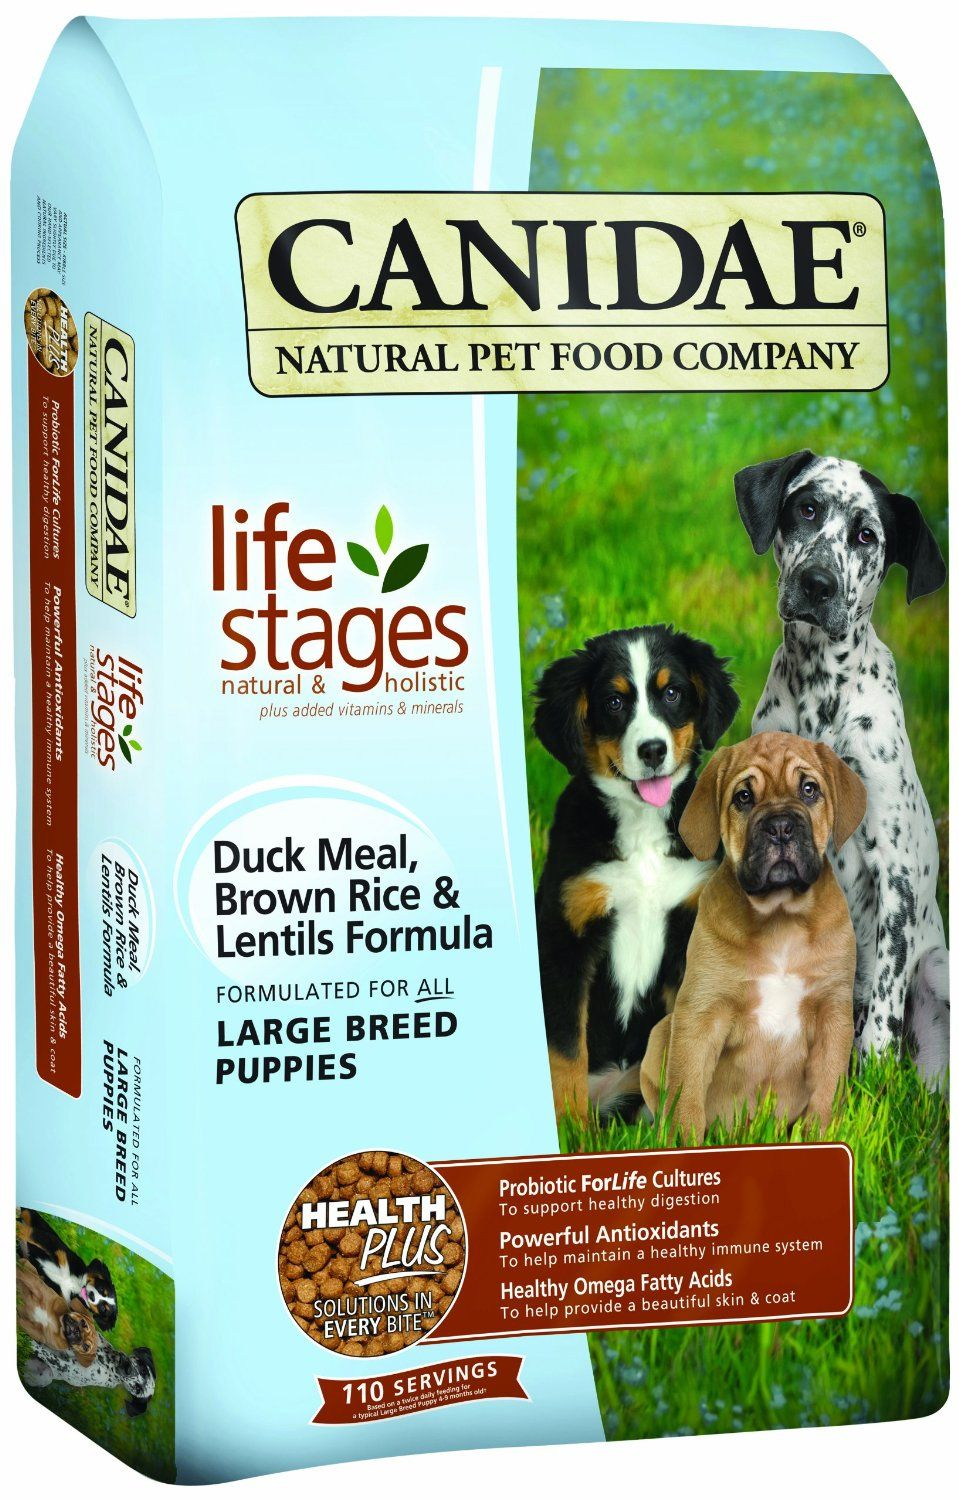 Canidae life stages duck meal dog food best dog foods